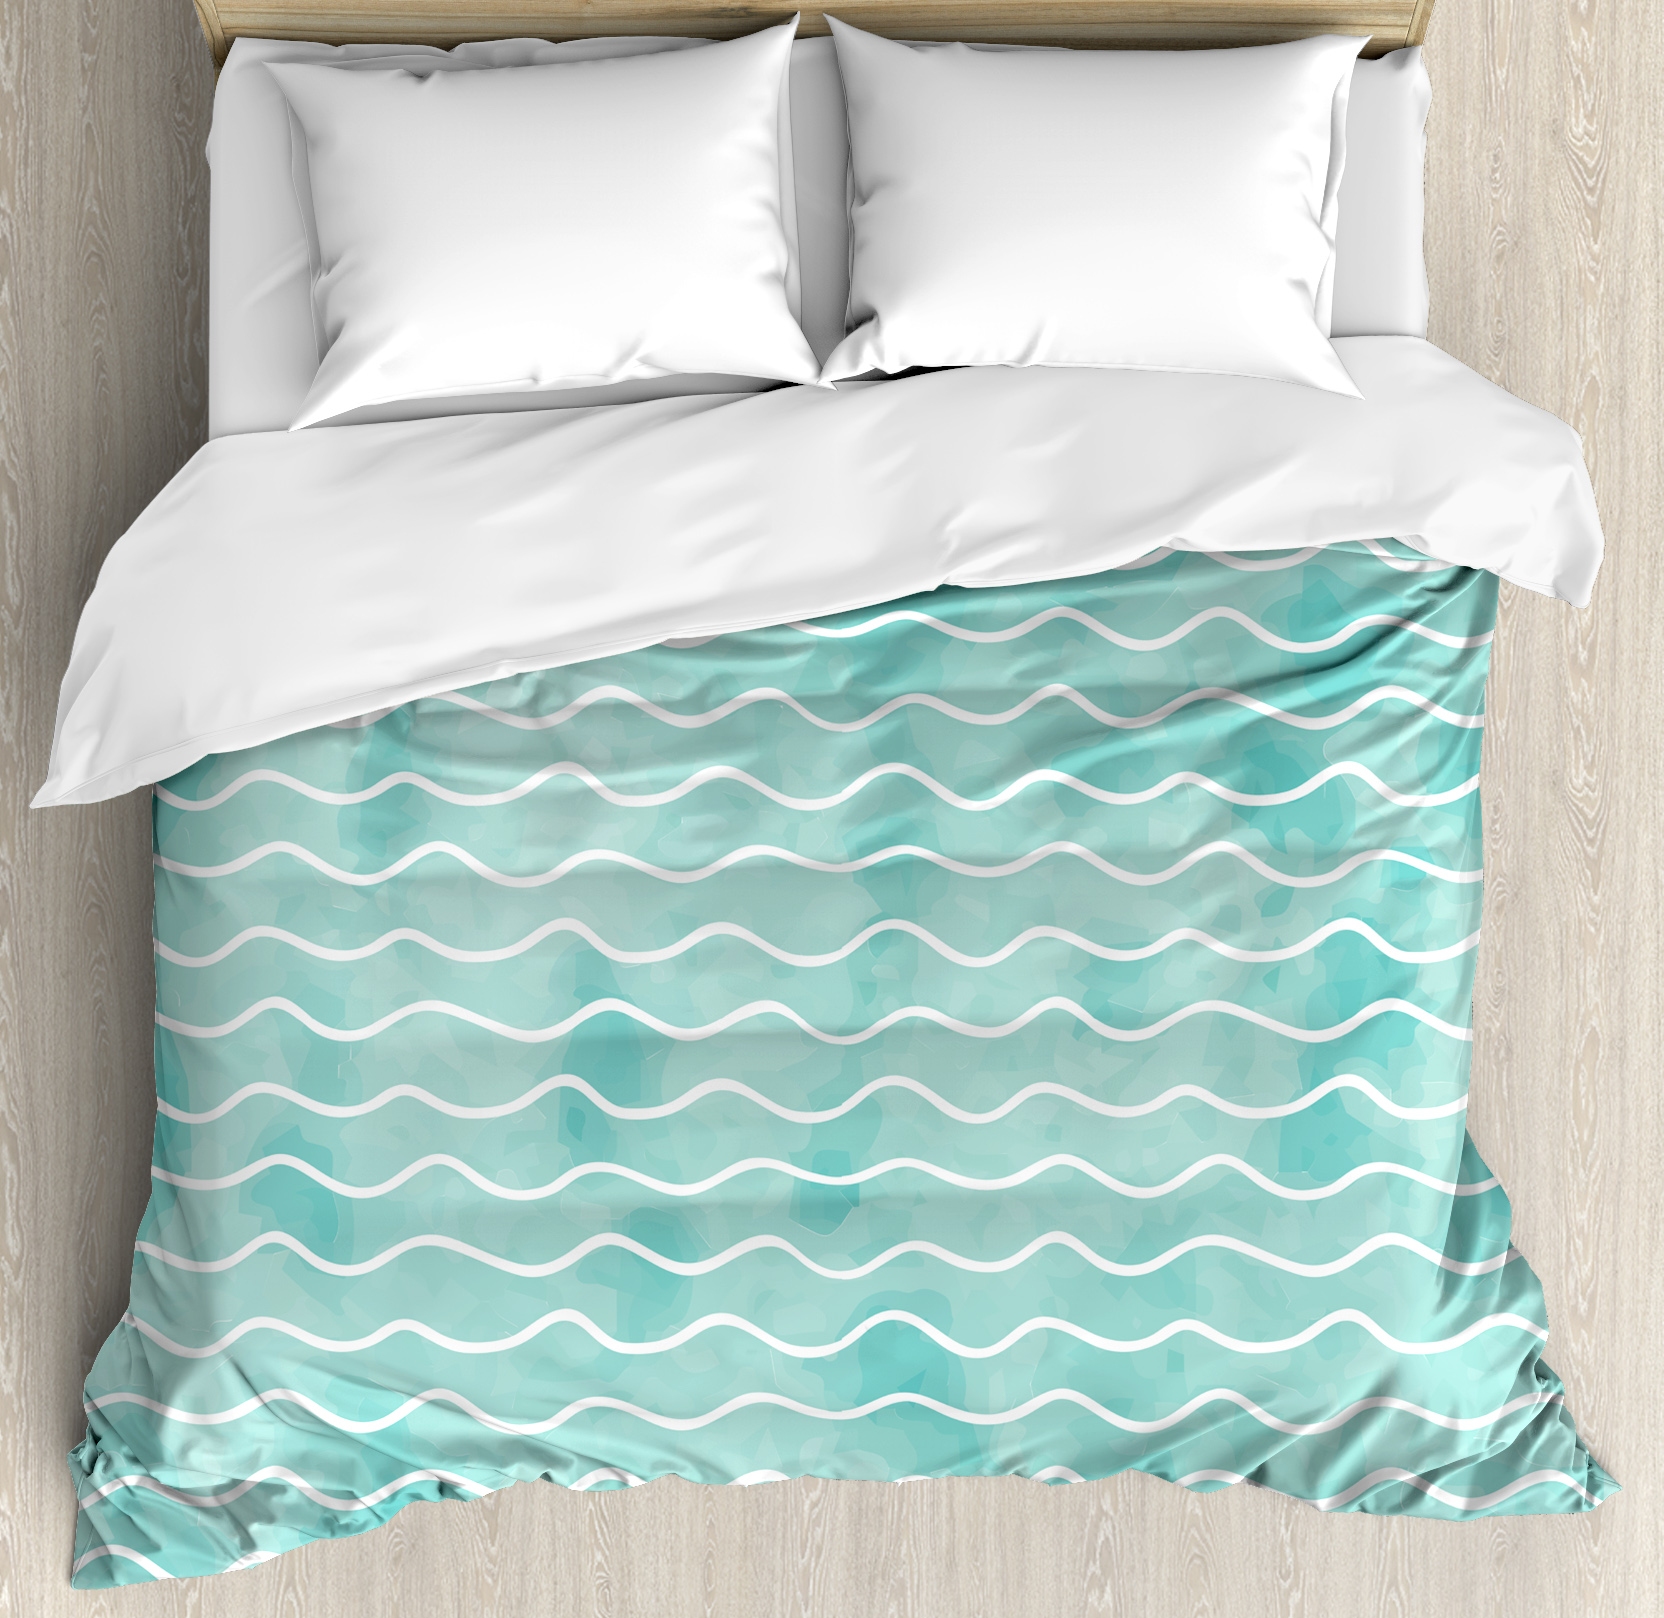 Nautical Duvet Cover Set, Soft Pastel Colored Ocean Sea Waves Pattern Summer Vibes Inspired Graphic, Decorative Bedding Set with Pillow Shams, Turquoise White, by Ambesonne